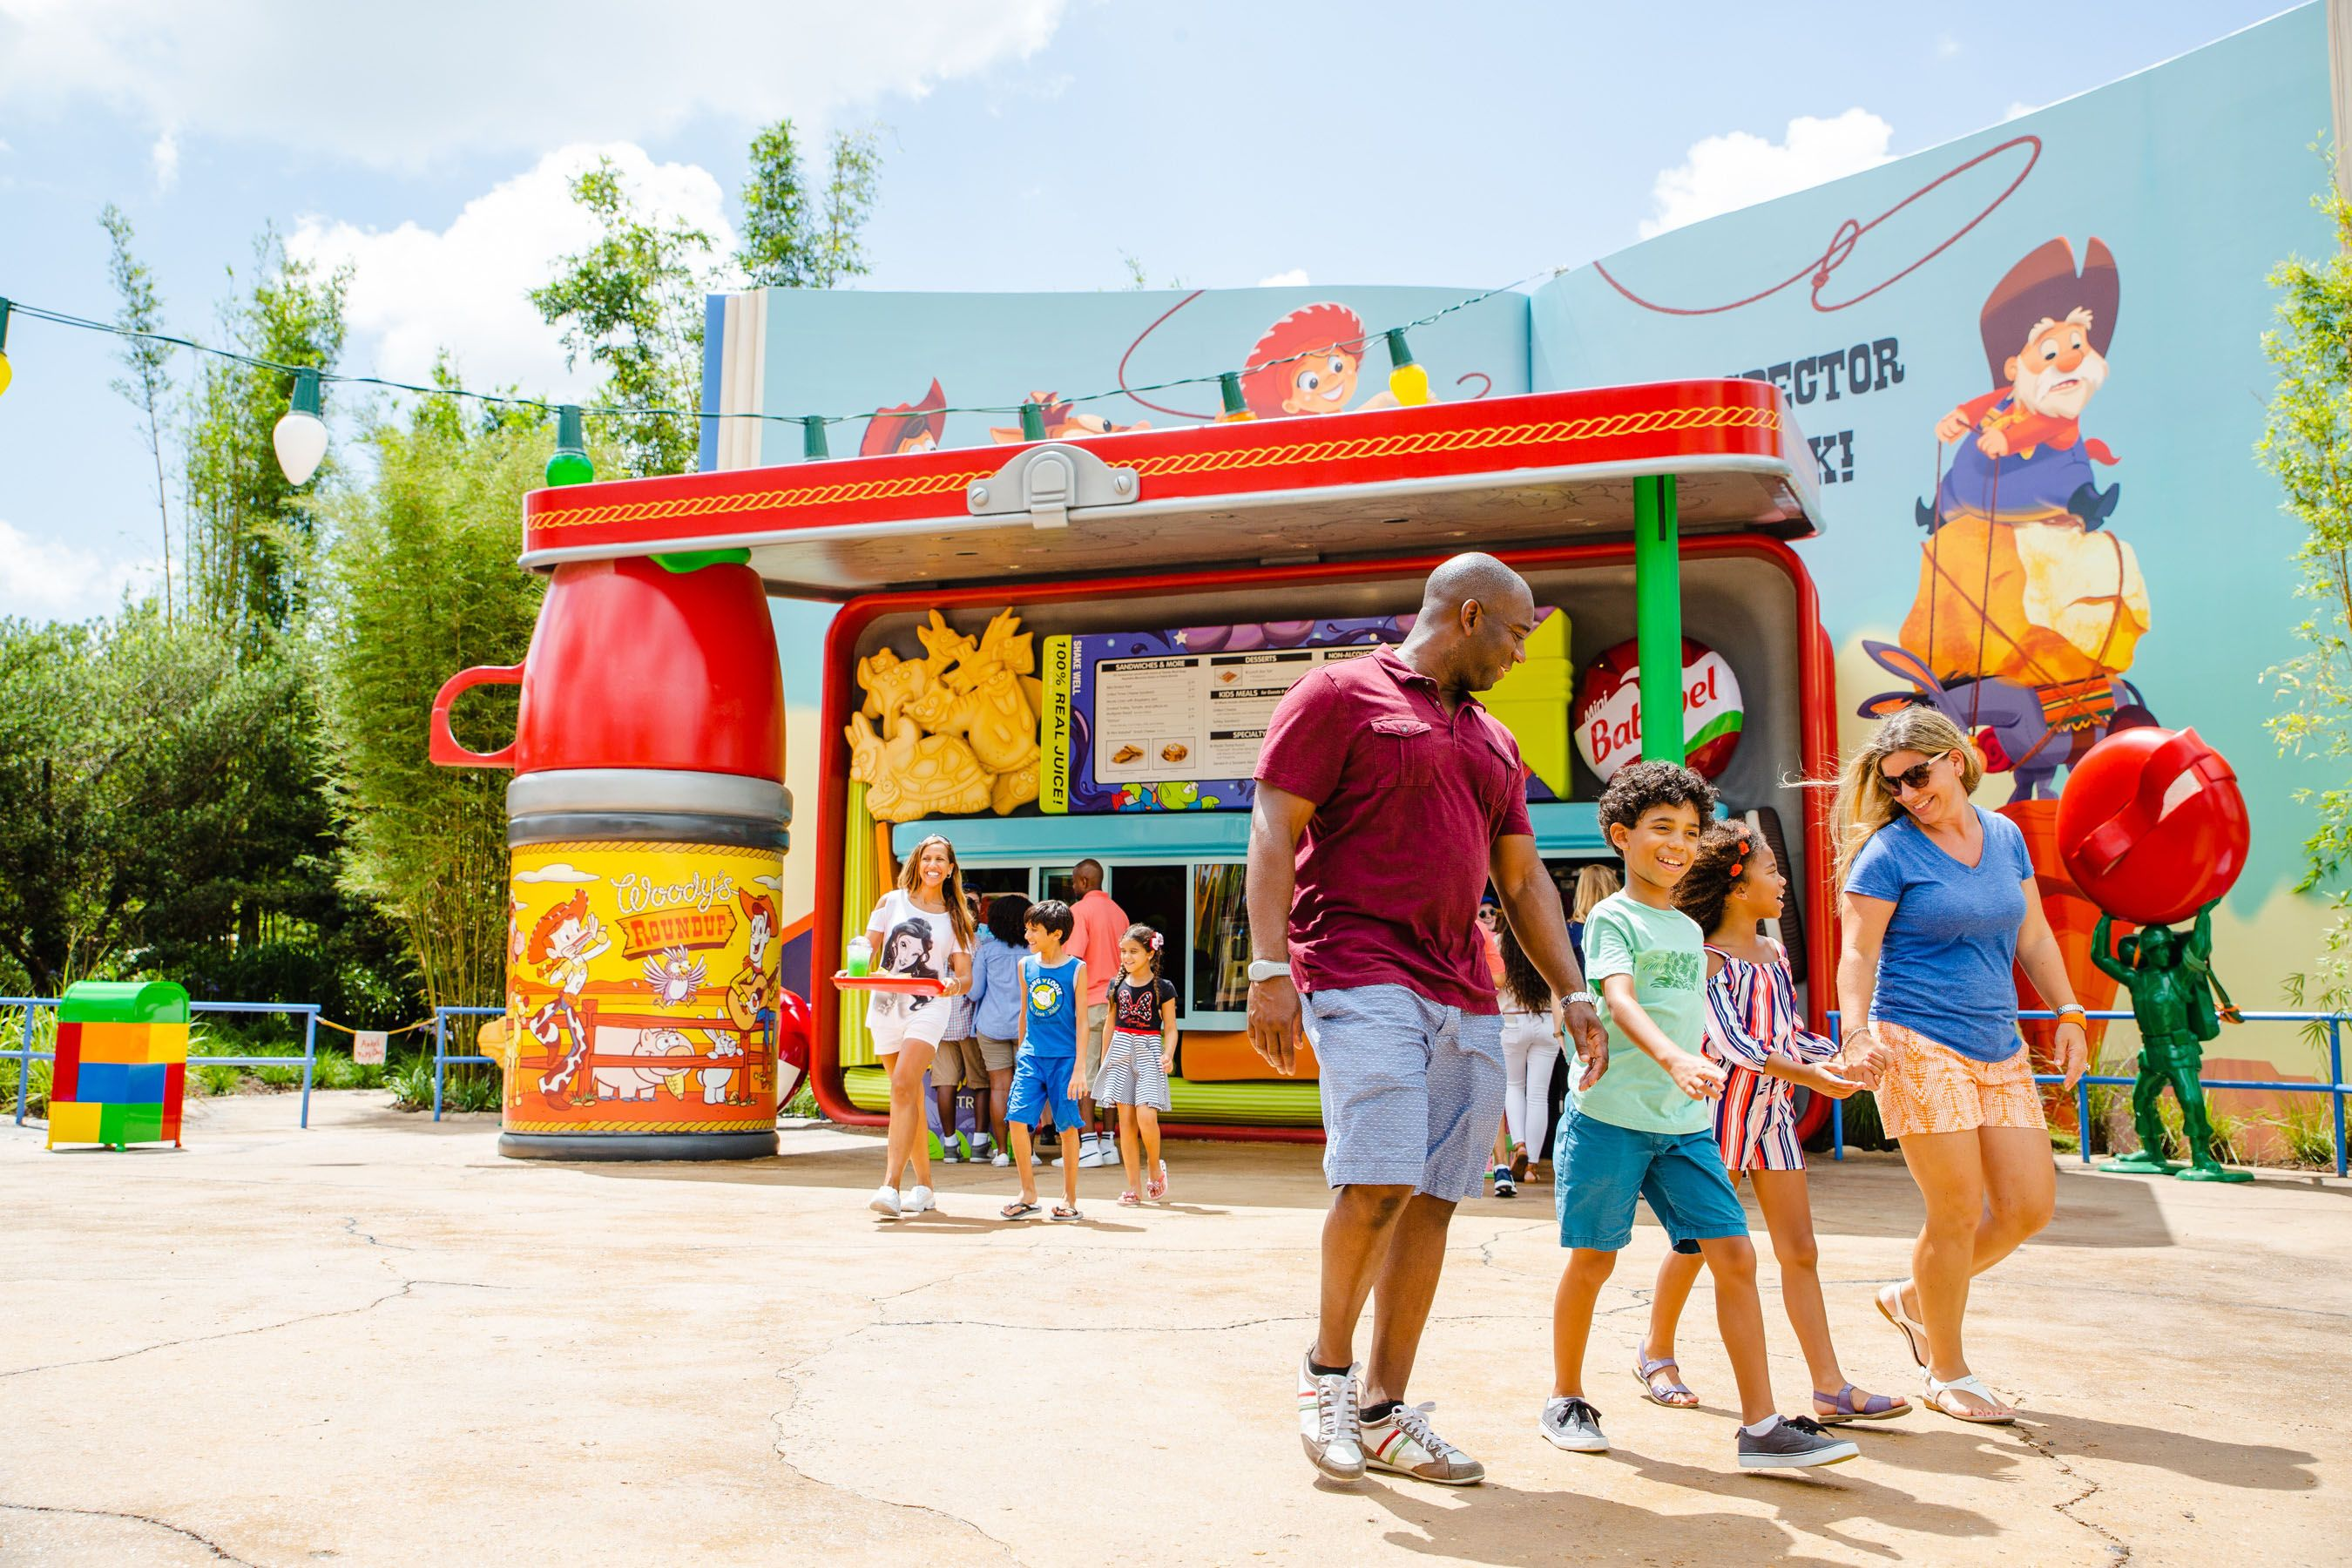 Woody S Lunch Box At Disney S Toy Story Land Features A Nostalgic Menu